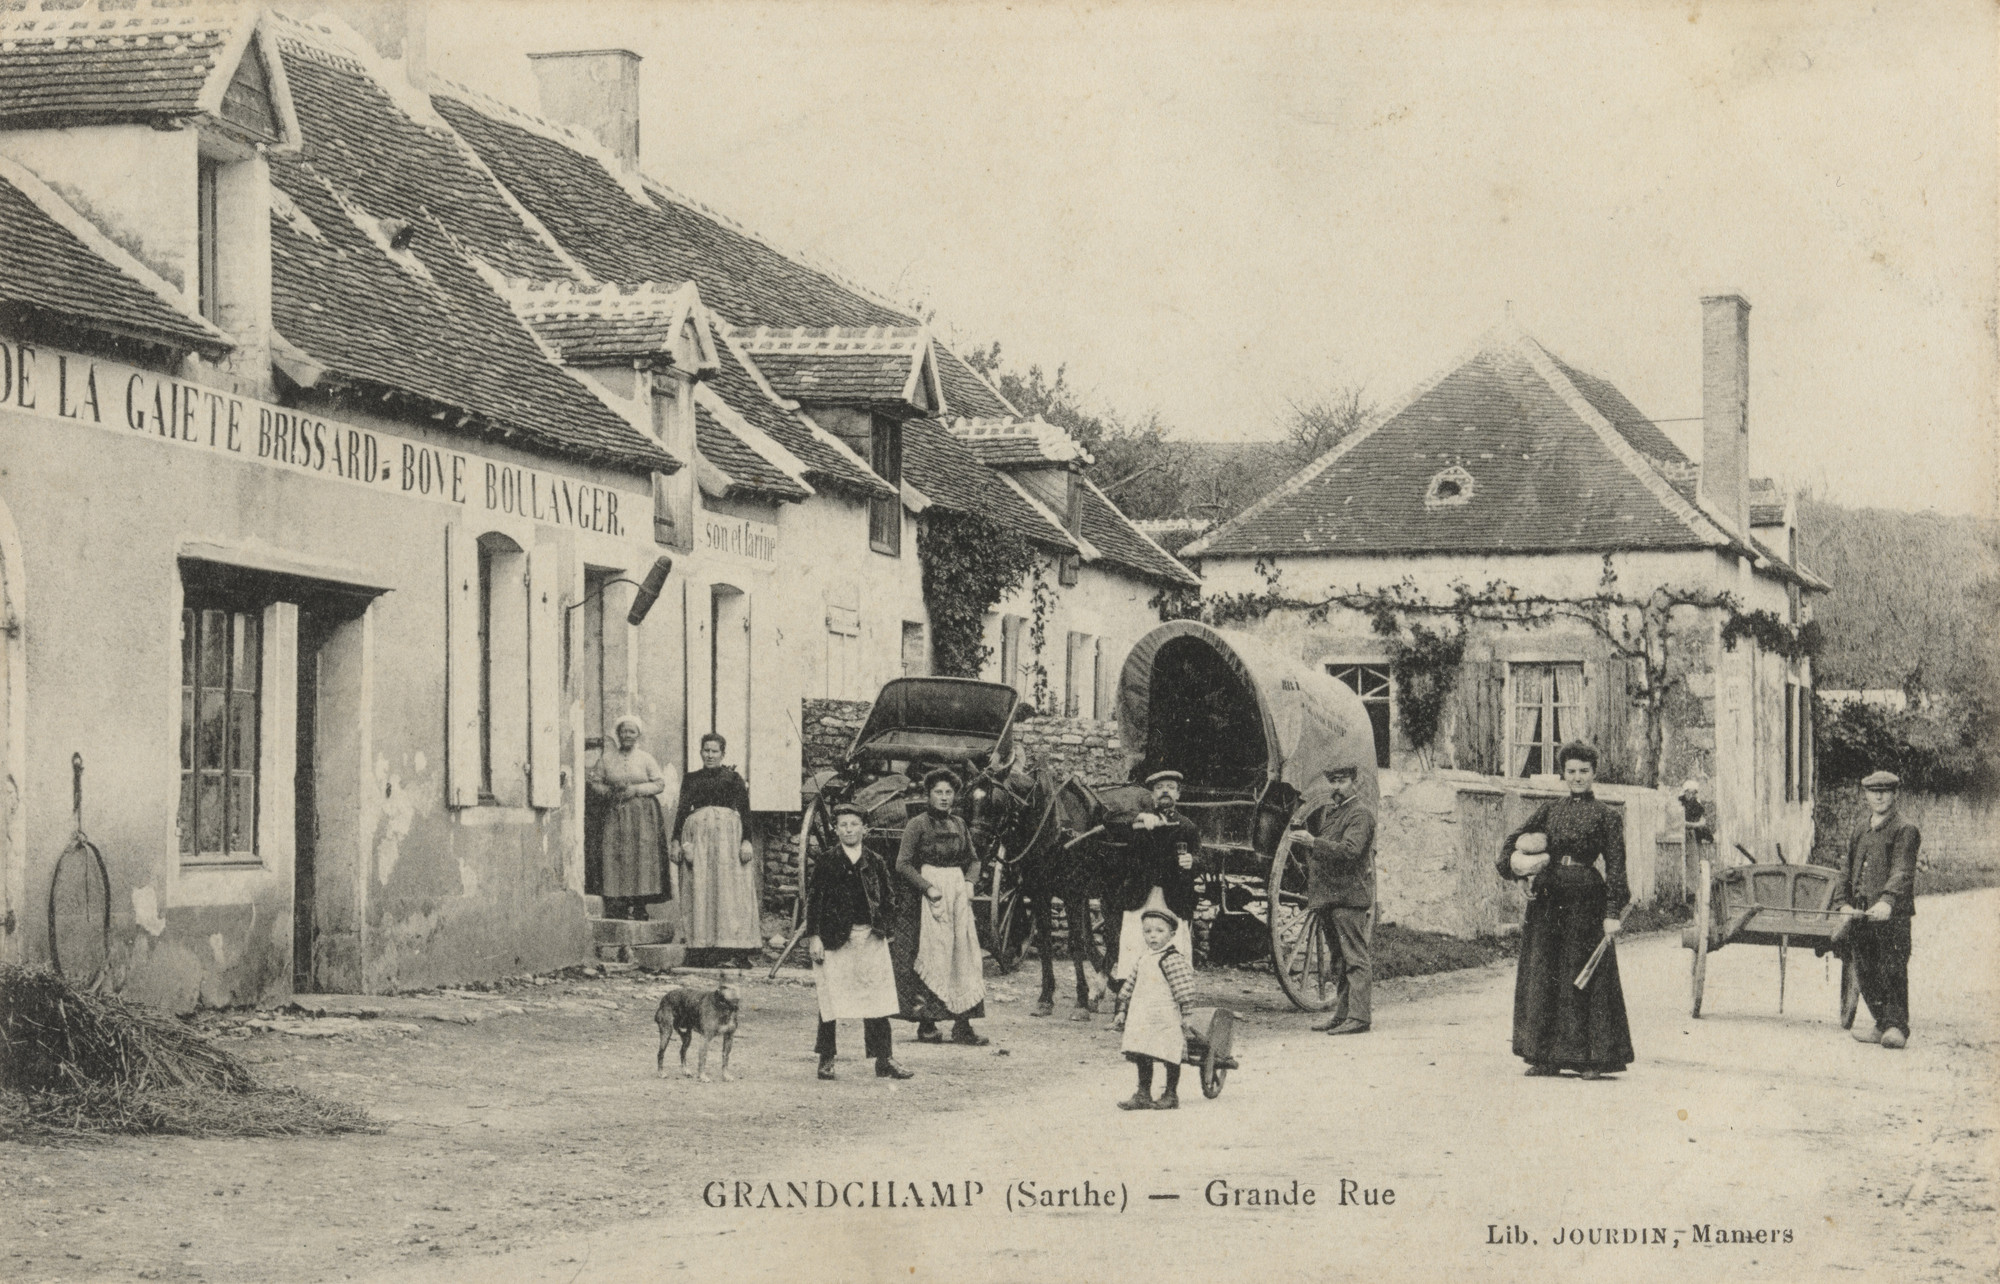 Unknown photographer. Boulangerie Bove, Grandchamp (Sarthe). 1906